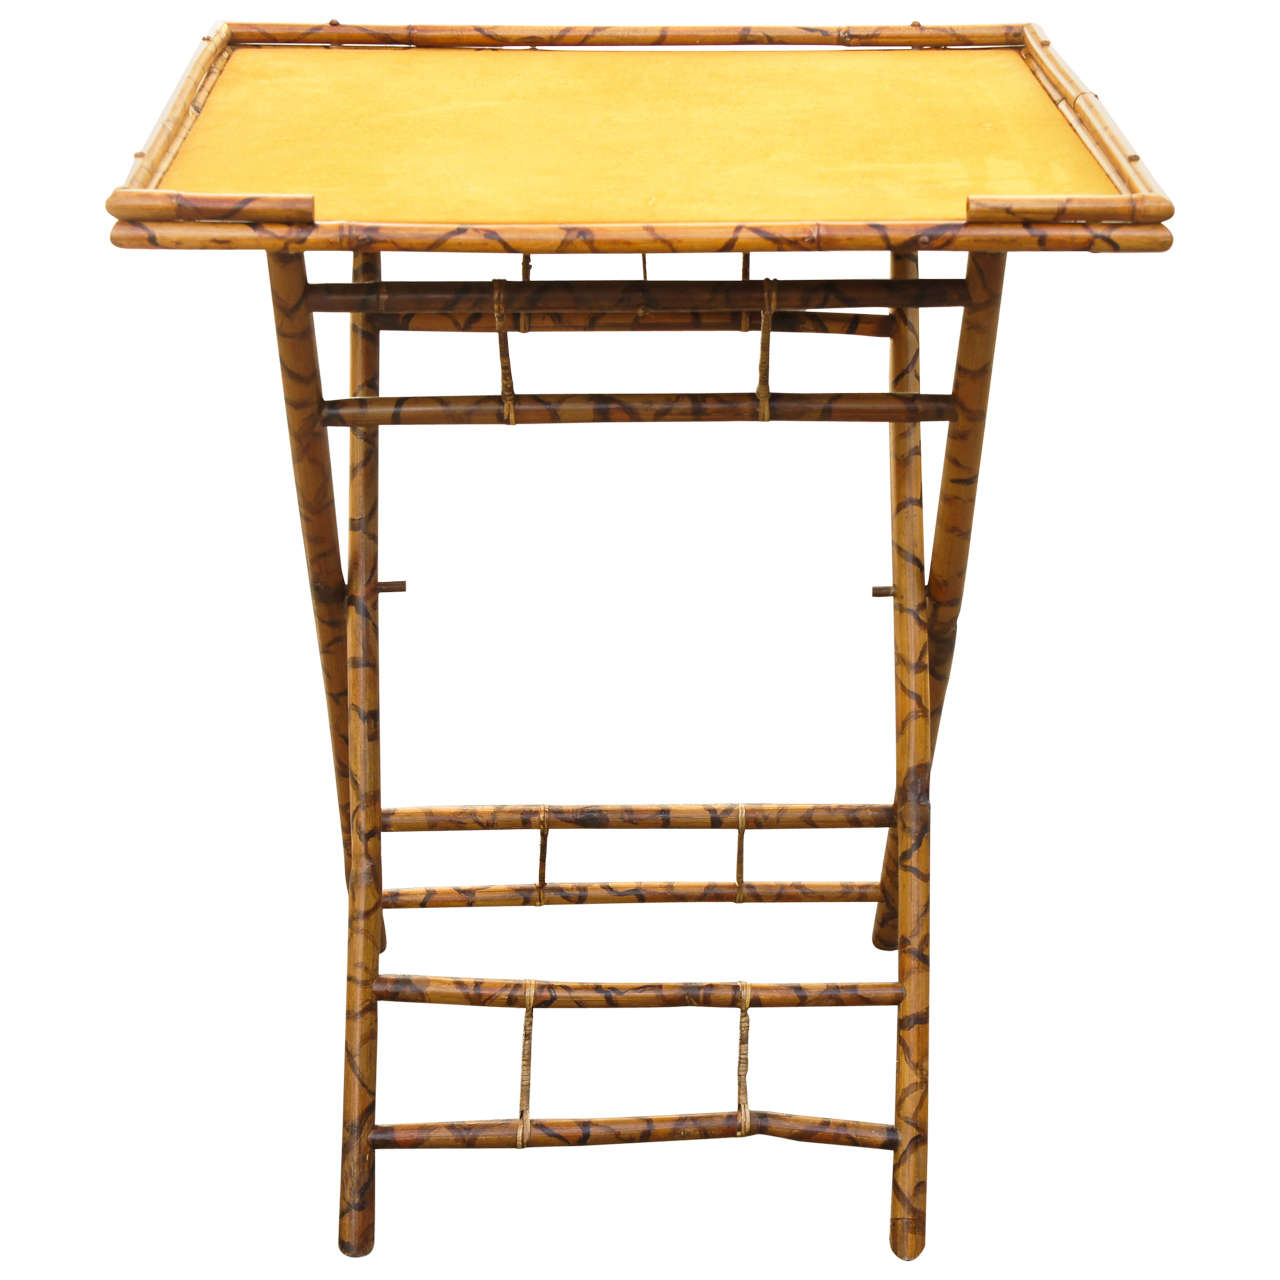 Late 19th Century Burnt Bamboo Folding Table For Sale at 1stdibs